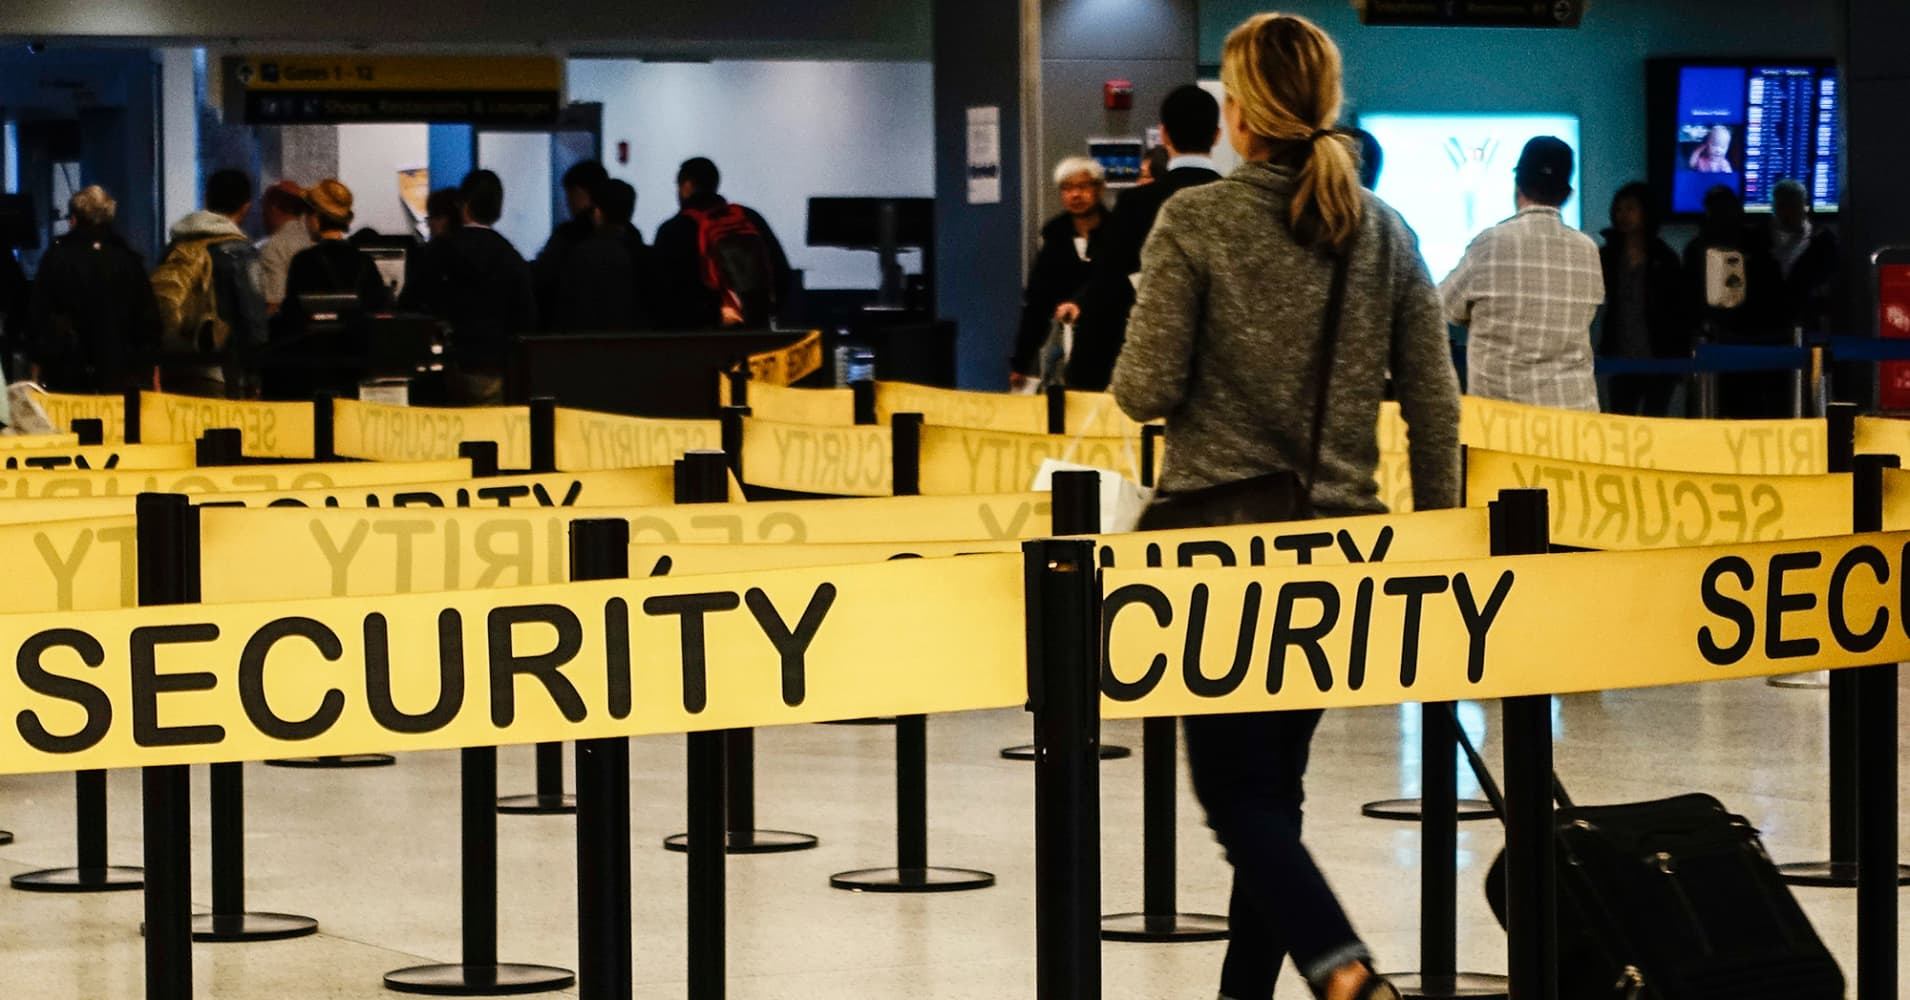 Your days of getting TSA pre-check for free are numbered